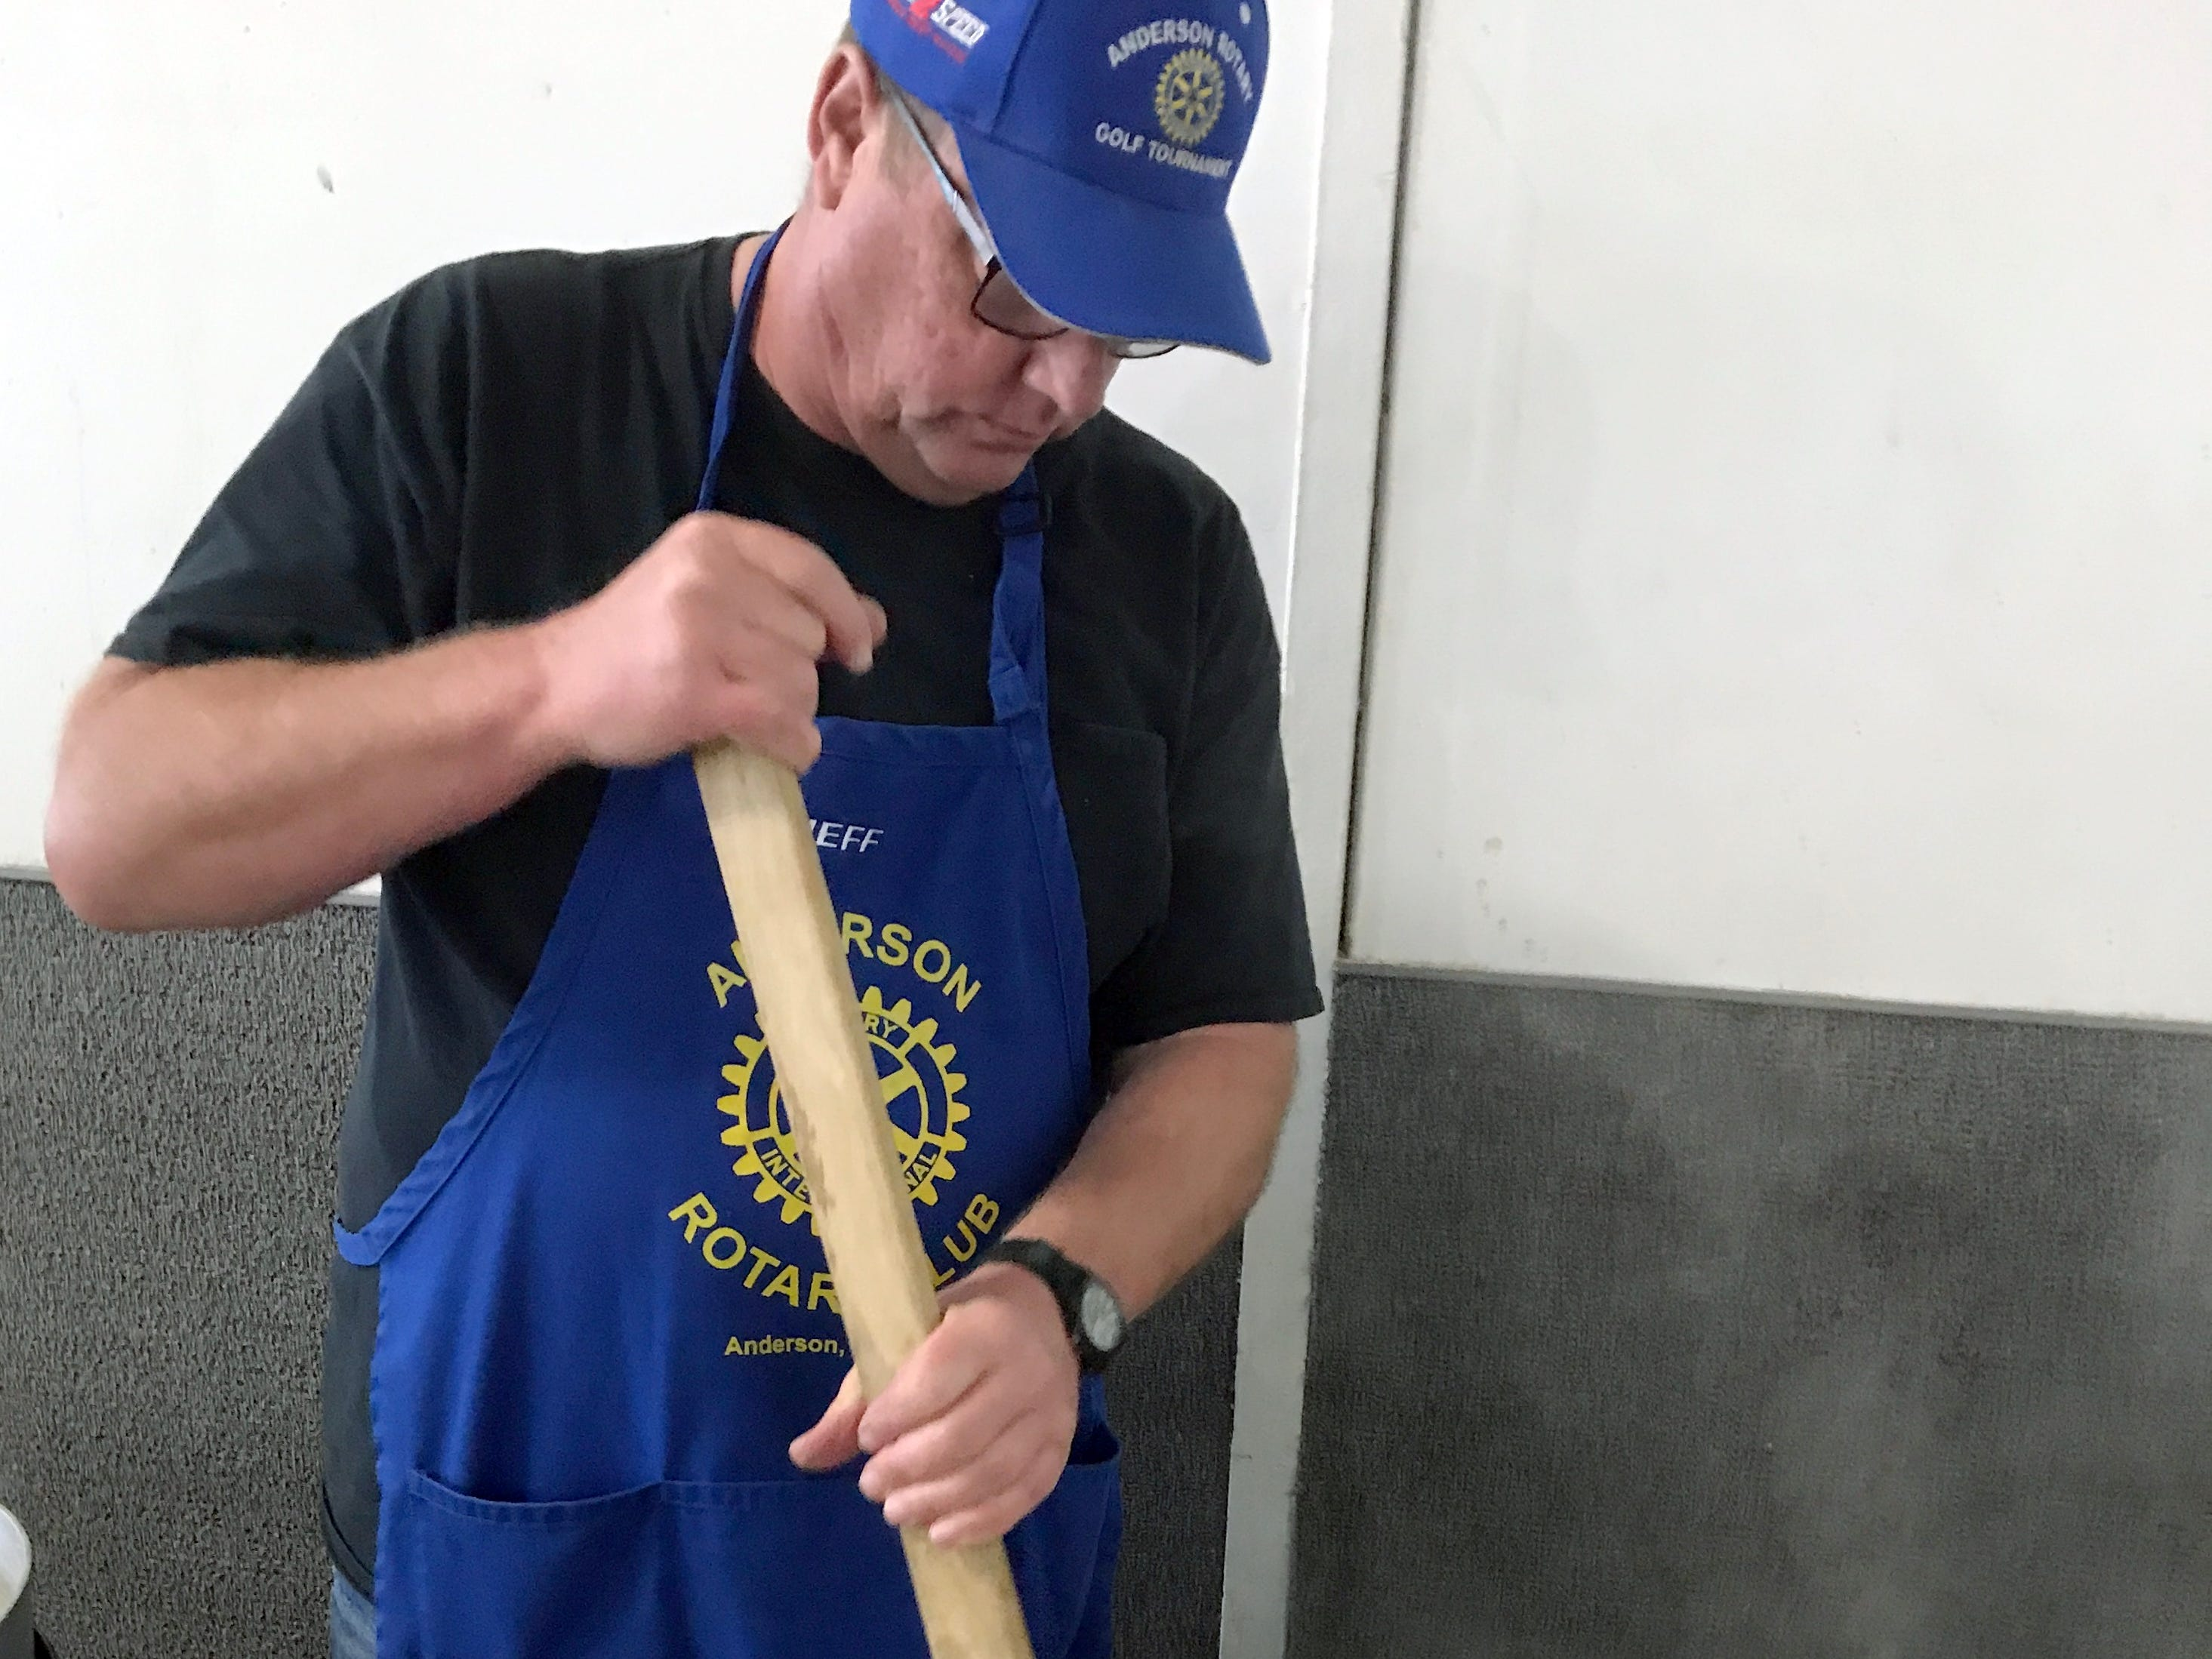 Give credit to Jeff Hall and fellow Anderson Rotary Club members for taking the hours needed to prepare Saturday's clam chowder for One SAFE Place's annual crab feed at the Shasta District Fair grounds in Anderson.